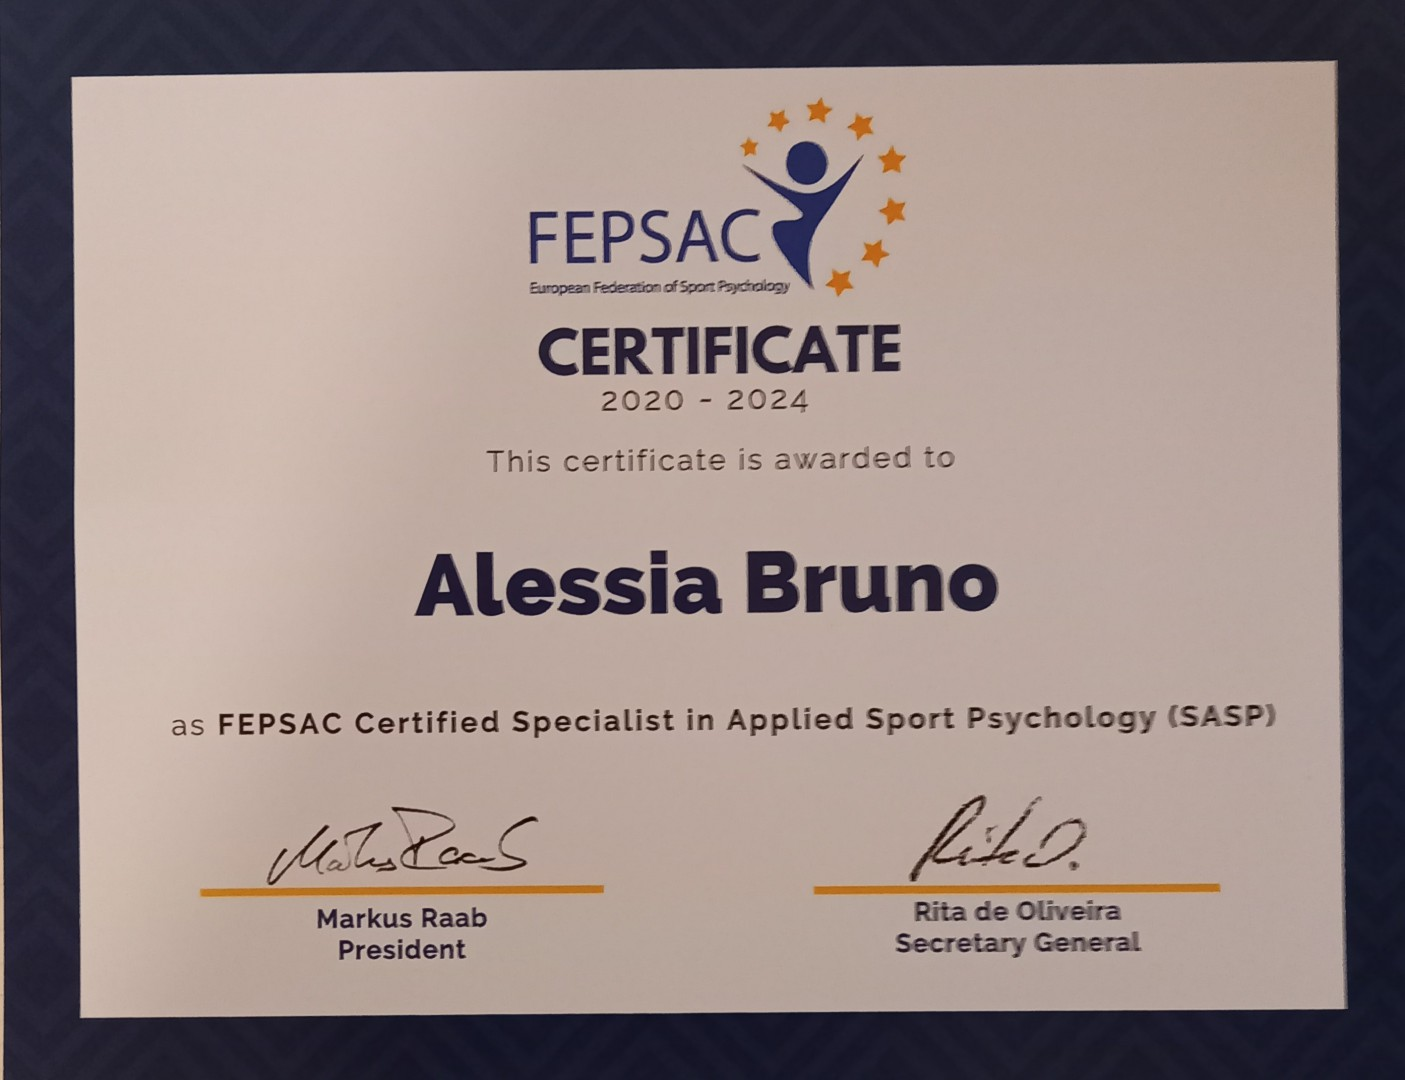 Accreditation with European Federation of Applied Sport Psychology  FEPSAC